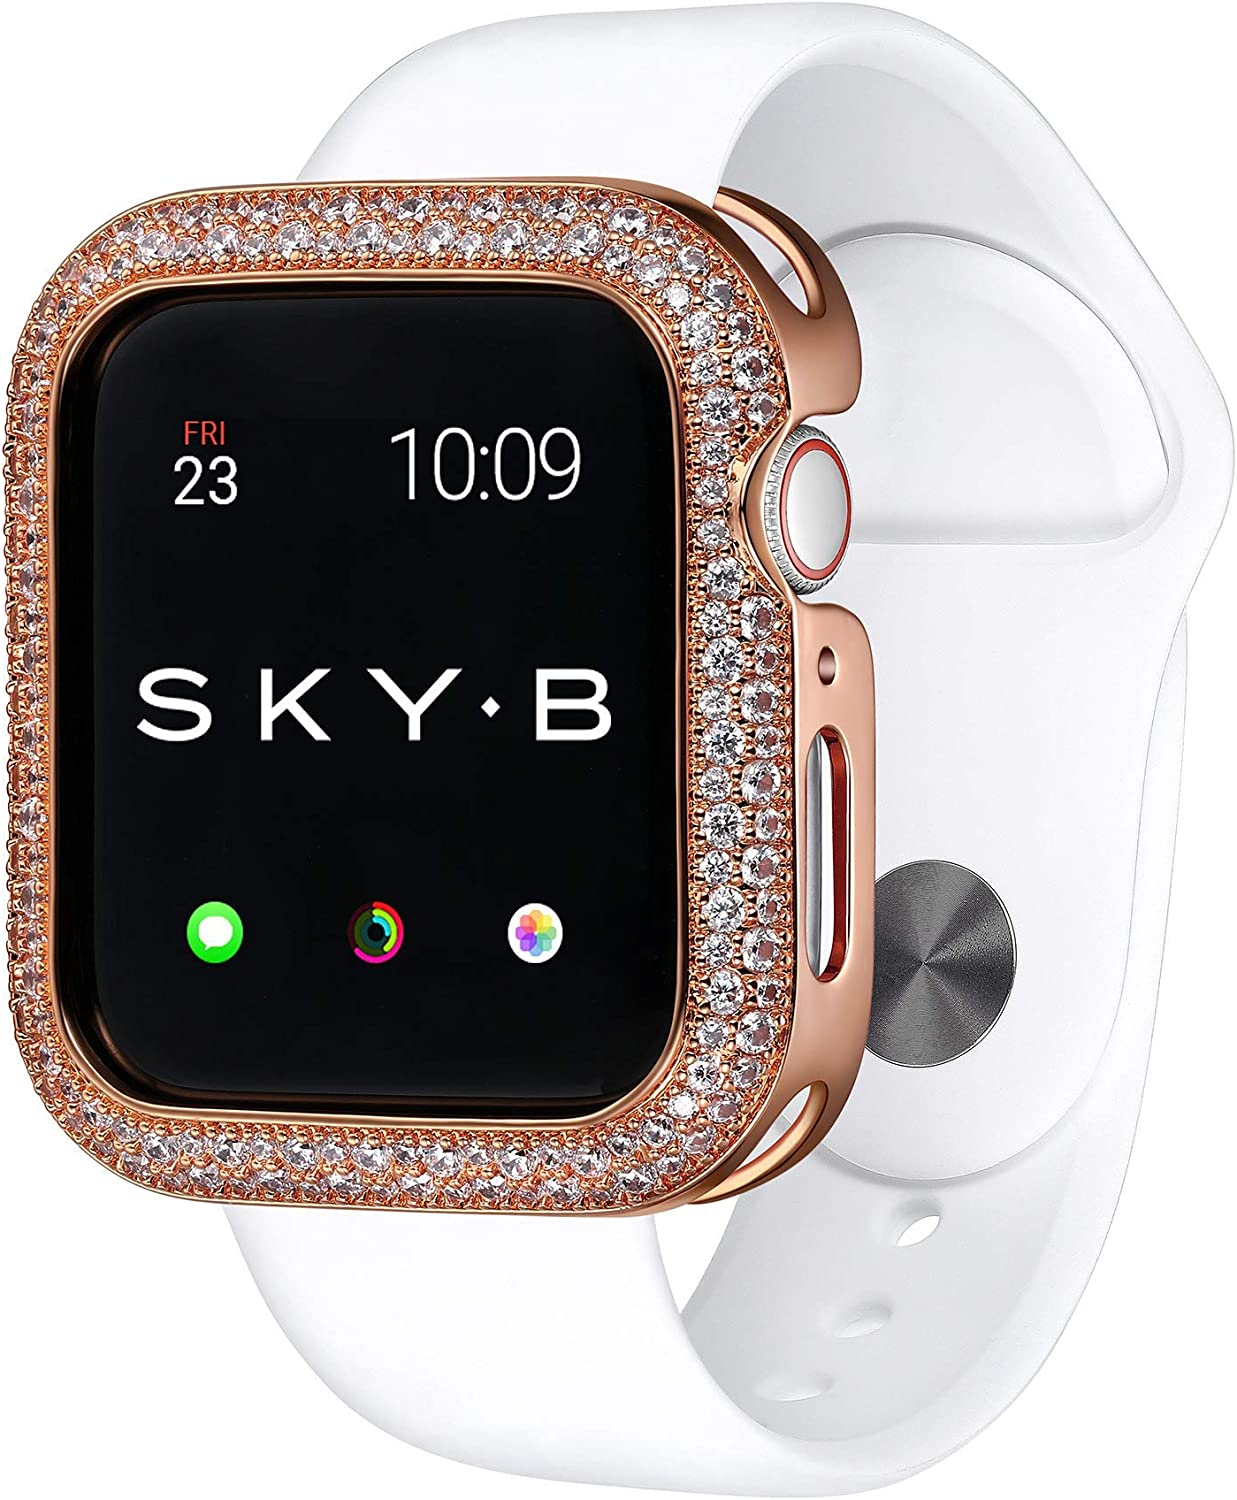 SKYB Soda Pop Rose Gold Protective Jewelry Case for Apple Watch Series 1, 2, 3, 4, 5 Devices - 44mm